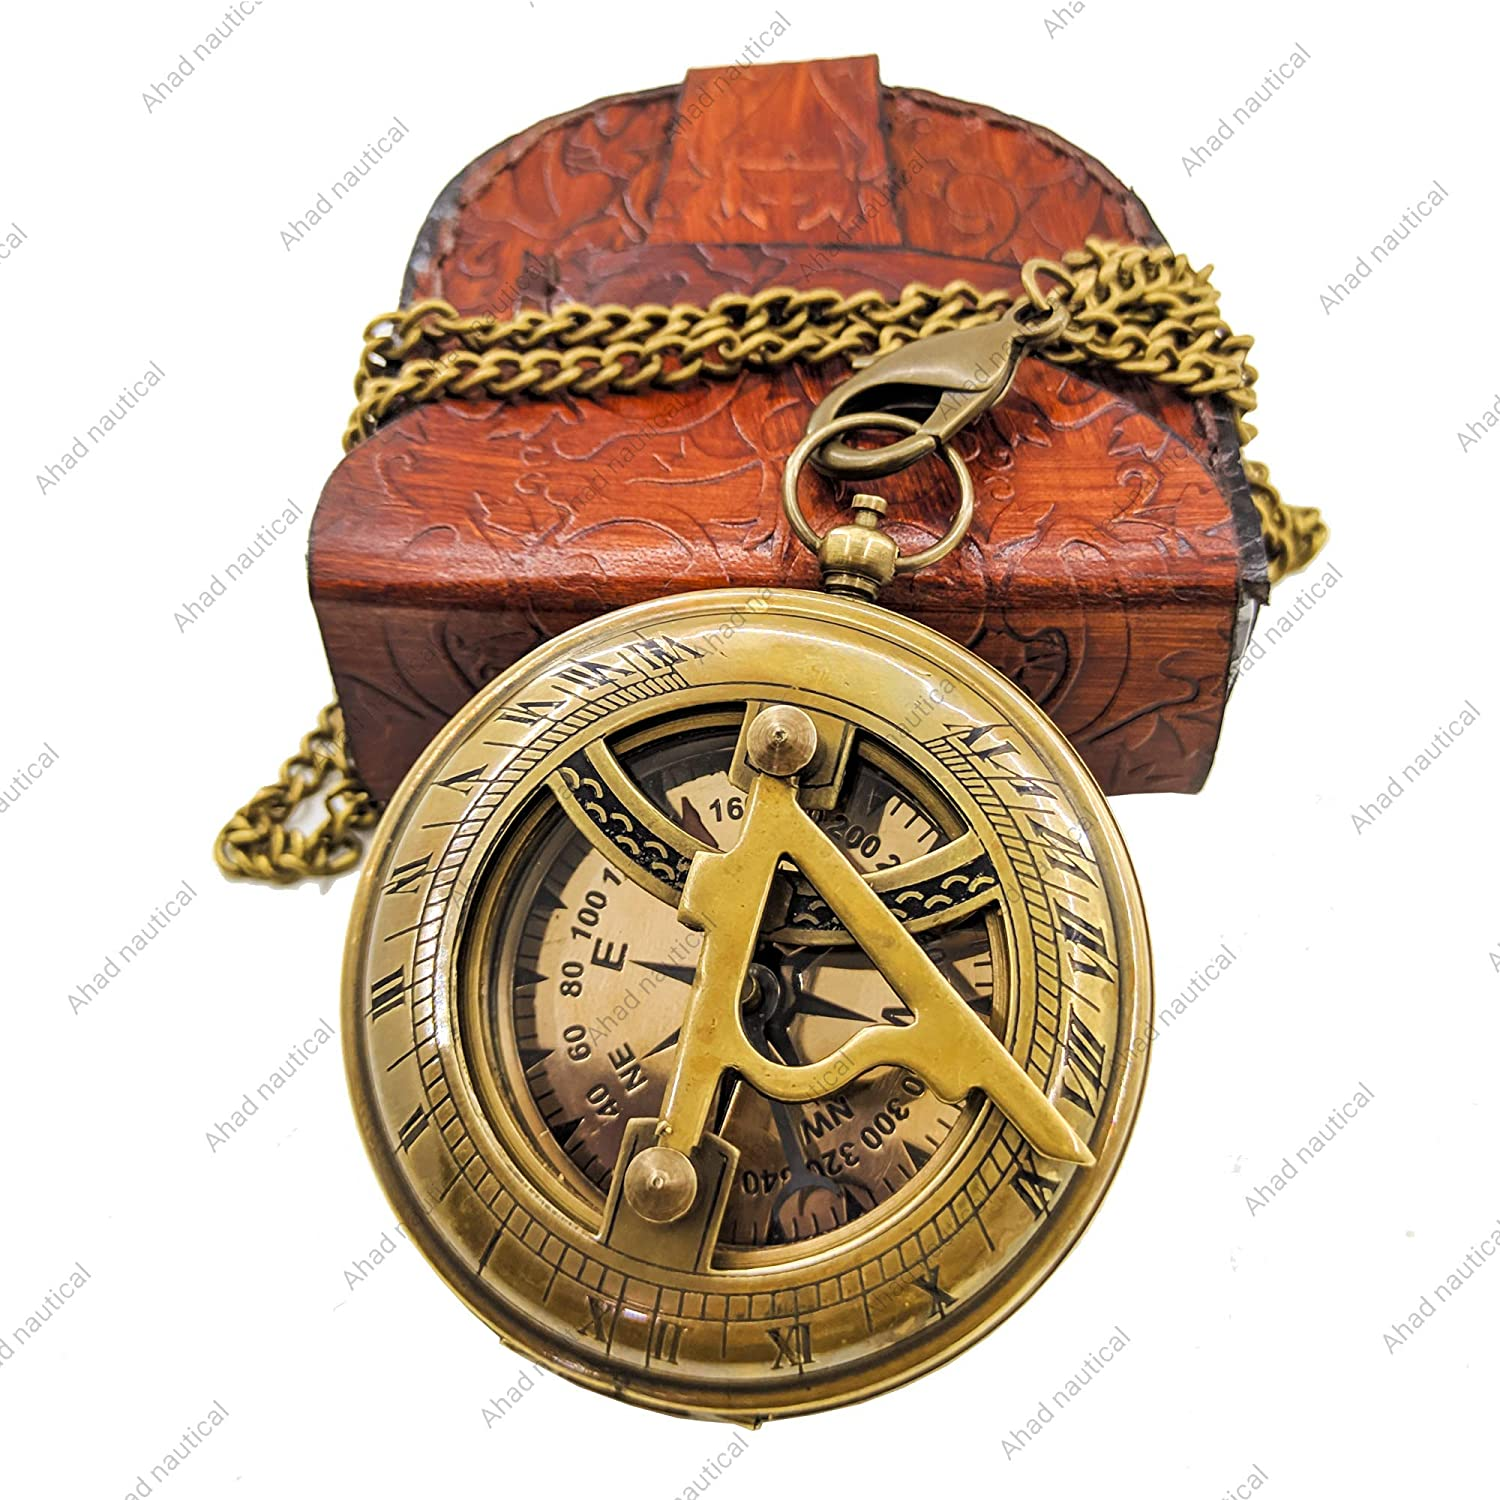 Ahad Nautical Brass Sundial Compass with Leather Case, 3'' inch Pocket Sundial Clock, Push Button Front Face Open Compass/Sundial for Garden, Gift for Everyone